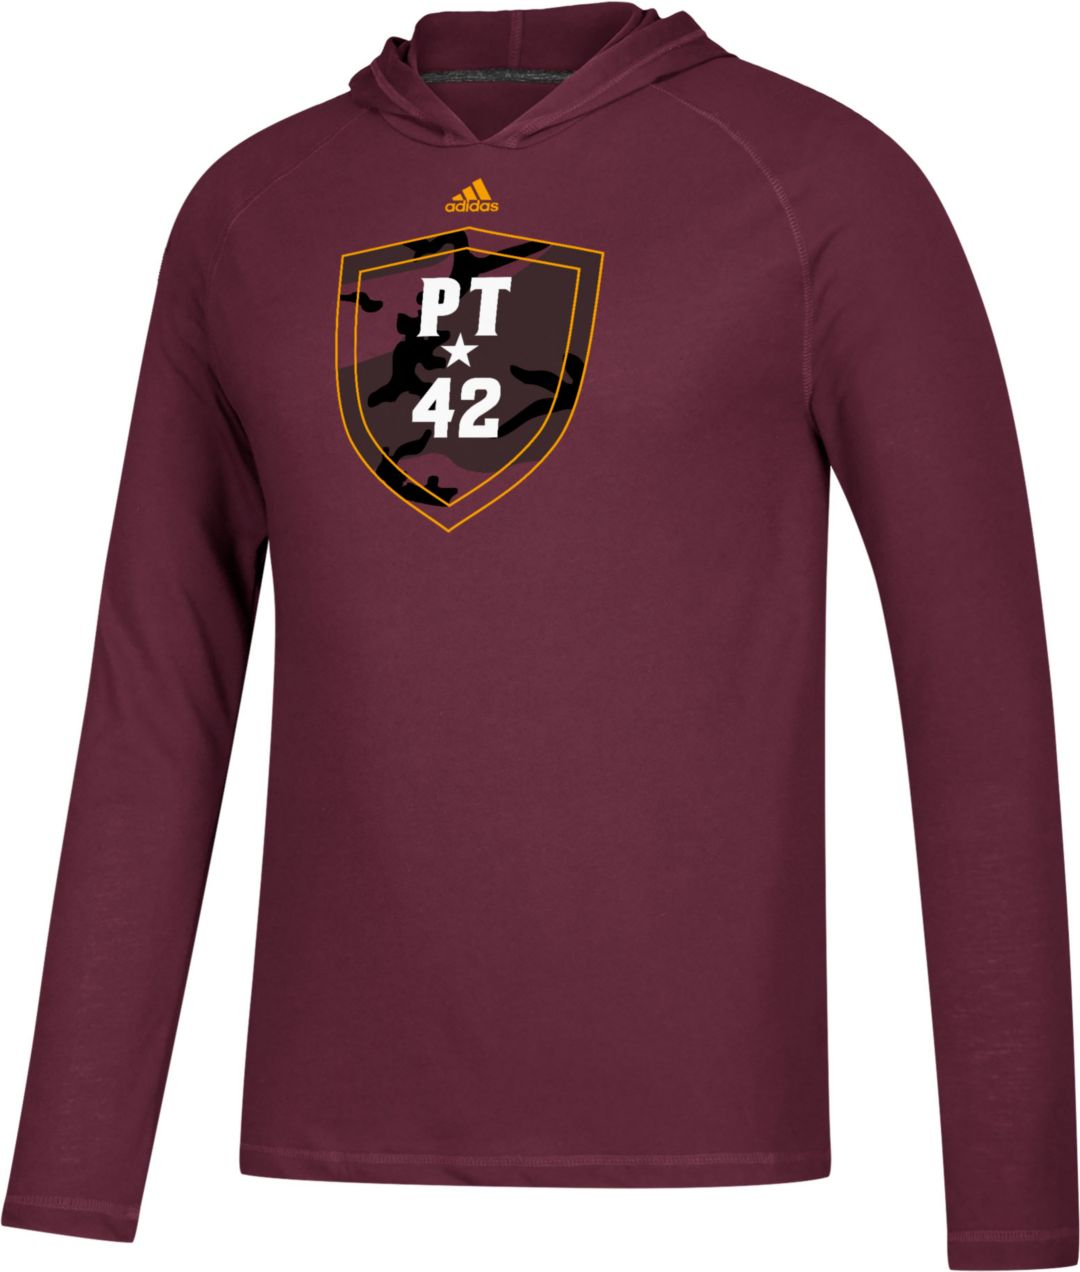 a3caff2be71b adidas Men's Arizona State Sun Devils Maroon 'PT42' Ultimate Long Sleeve  Hooded Shirt 1